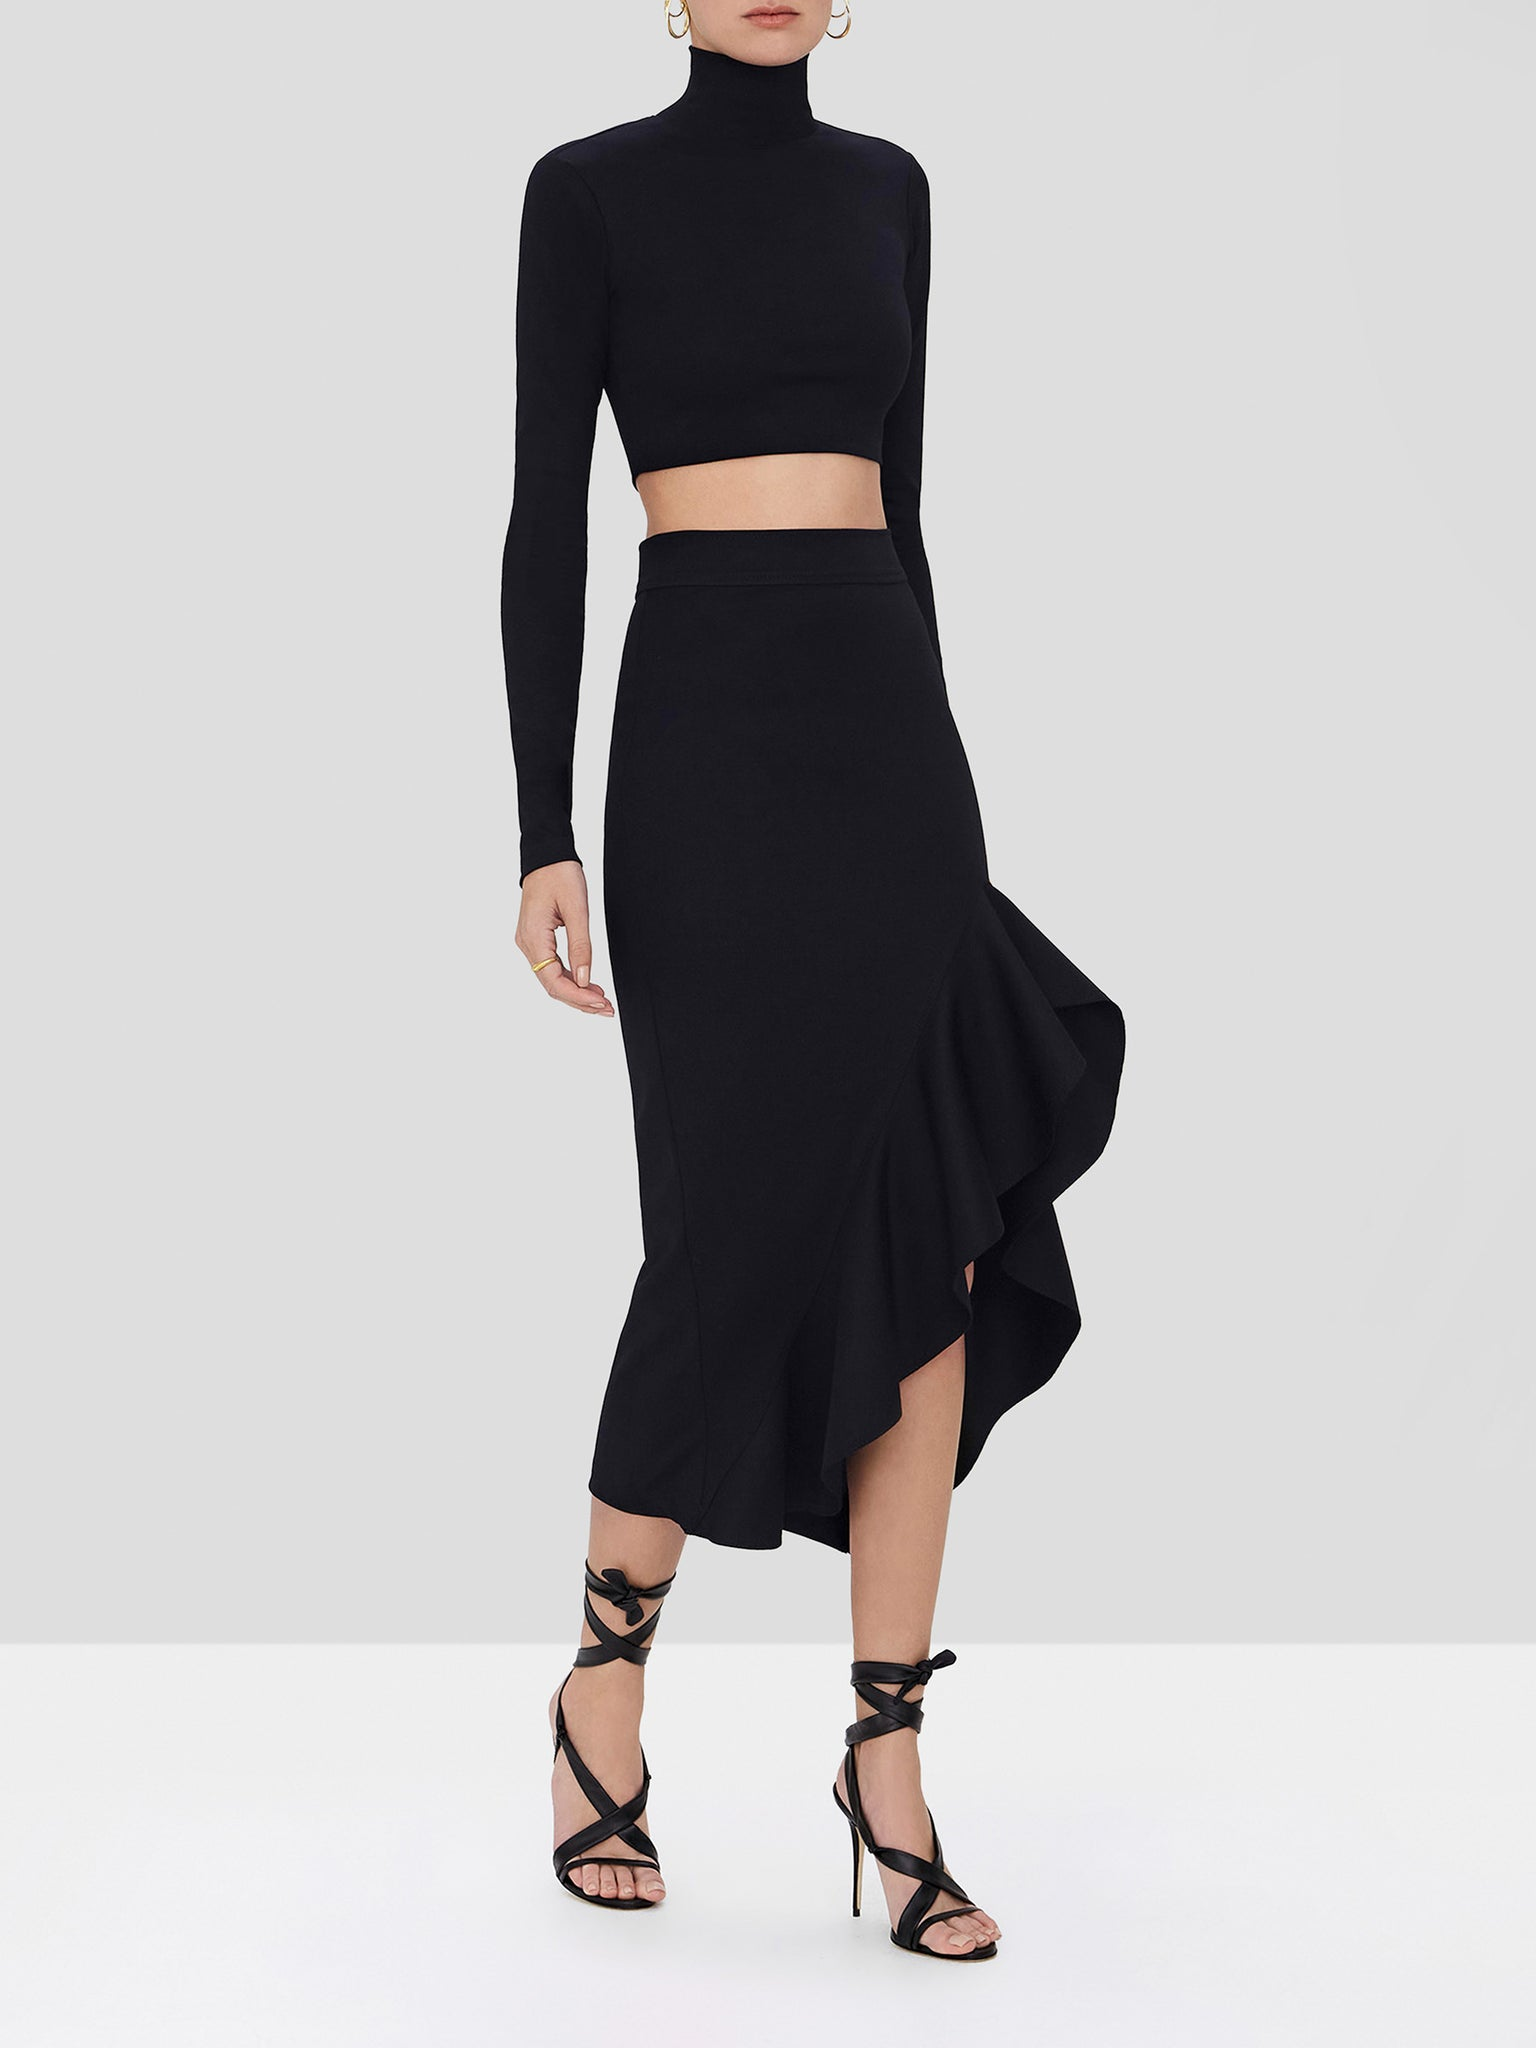 bani skirt in black